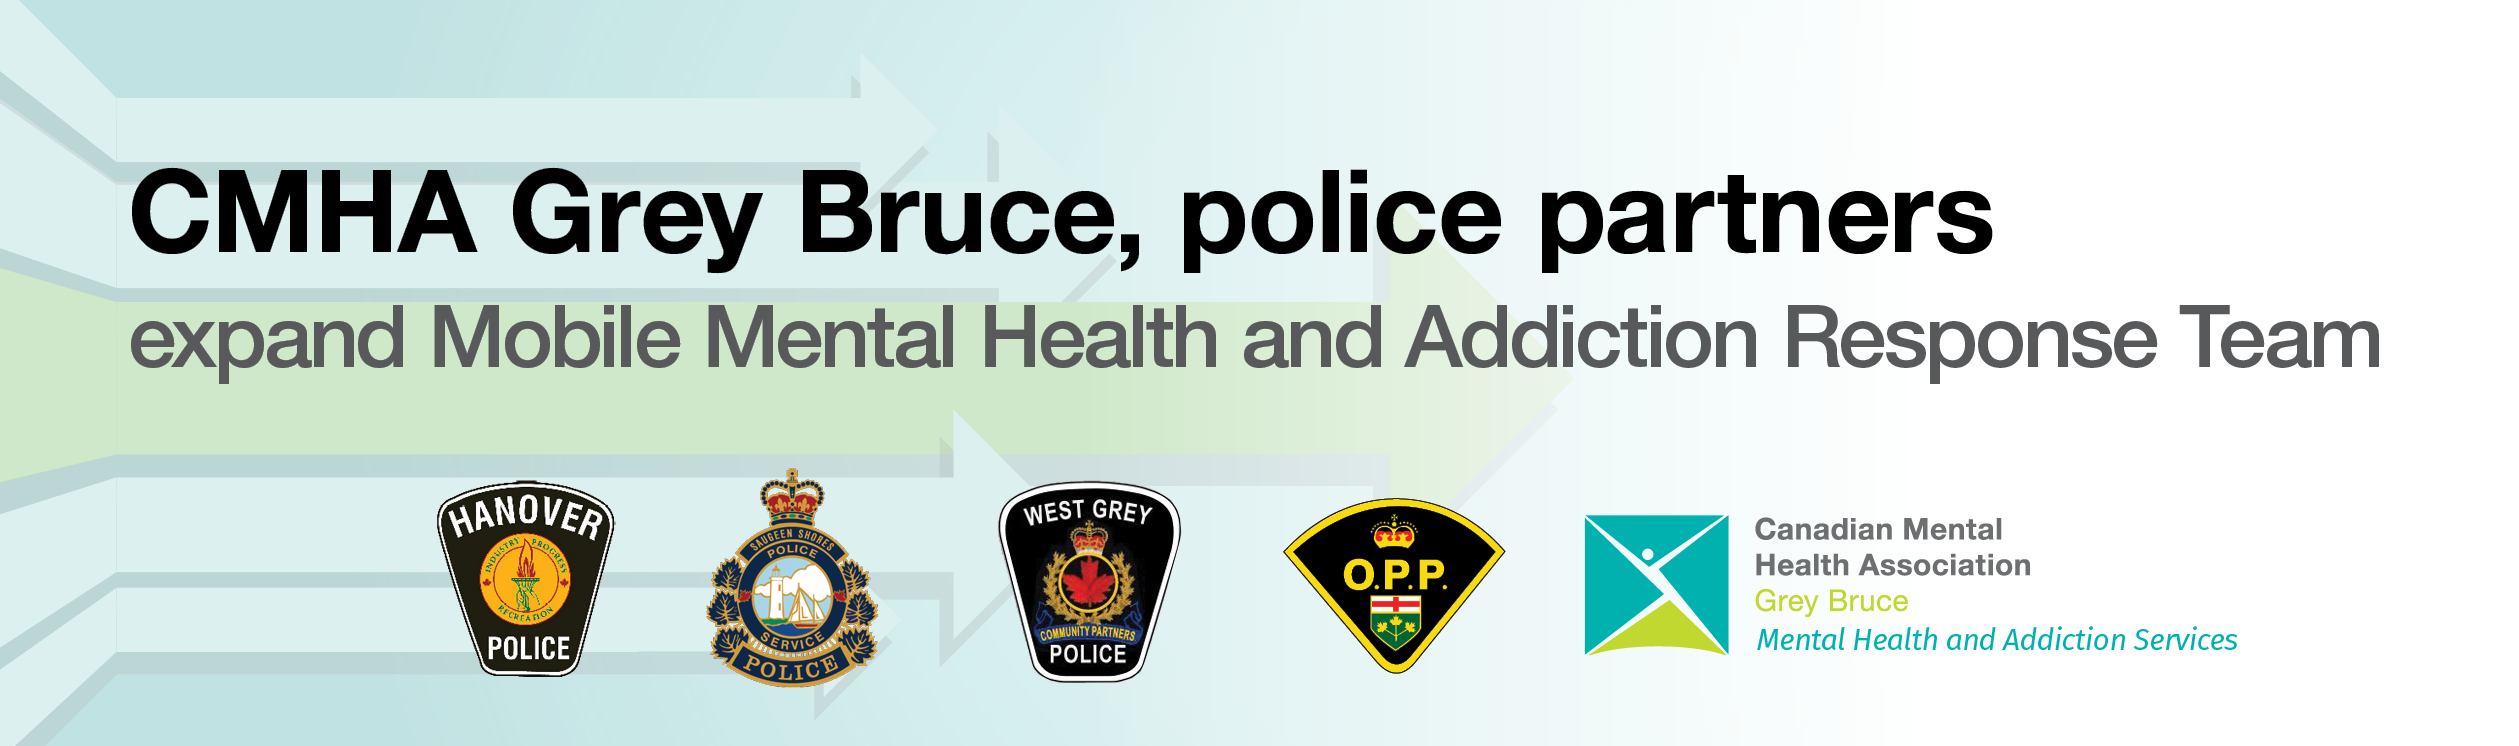 CMHA Grey Bruce, police partners expand mobile crisis response program to serve more communities in Grey and Bruce